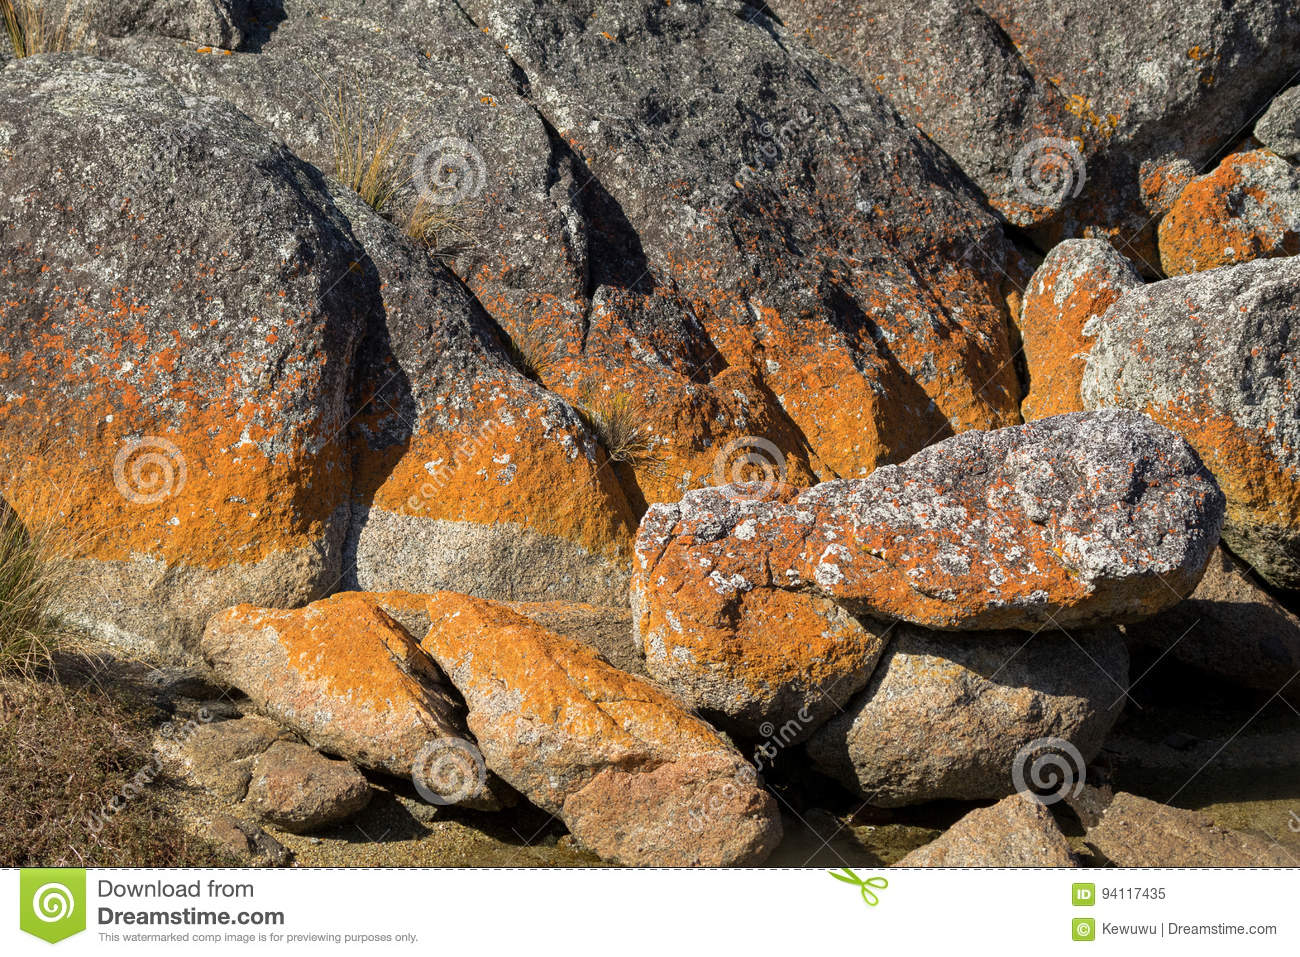 Closeup of red orange lichen growing on granite rocks formations